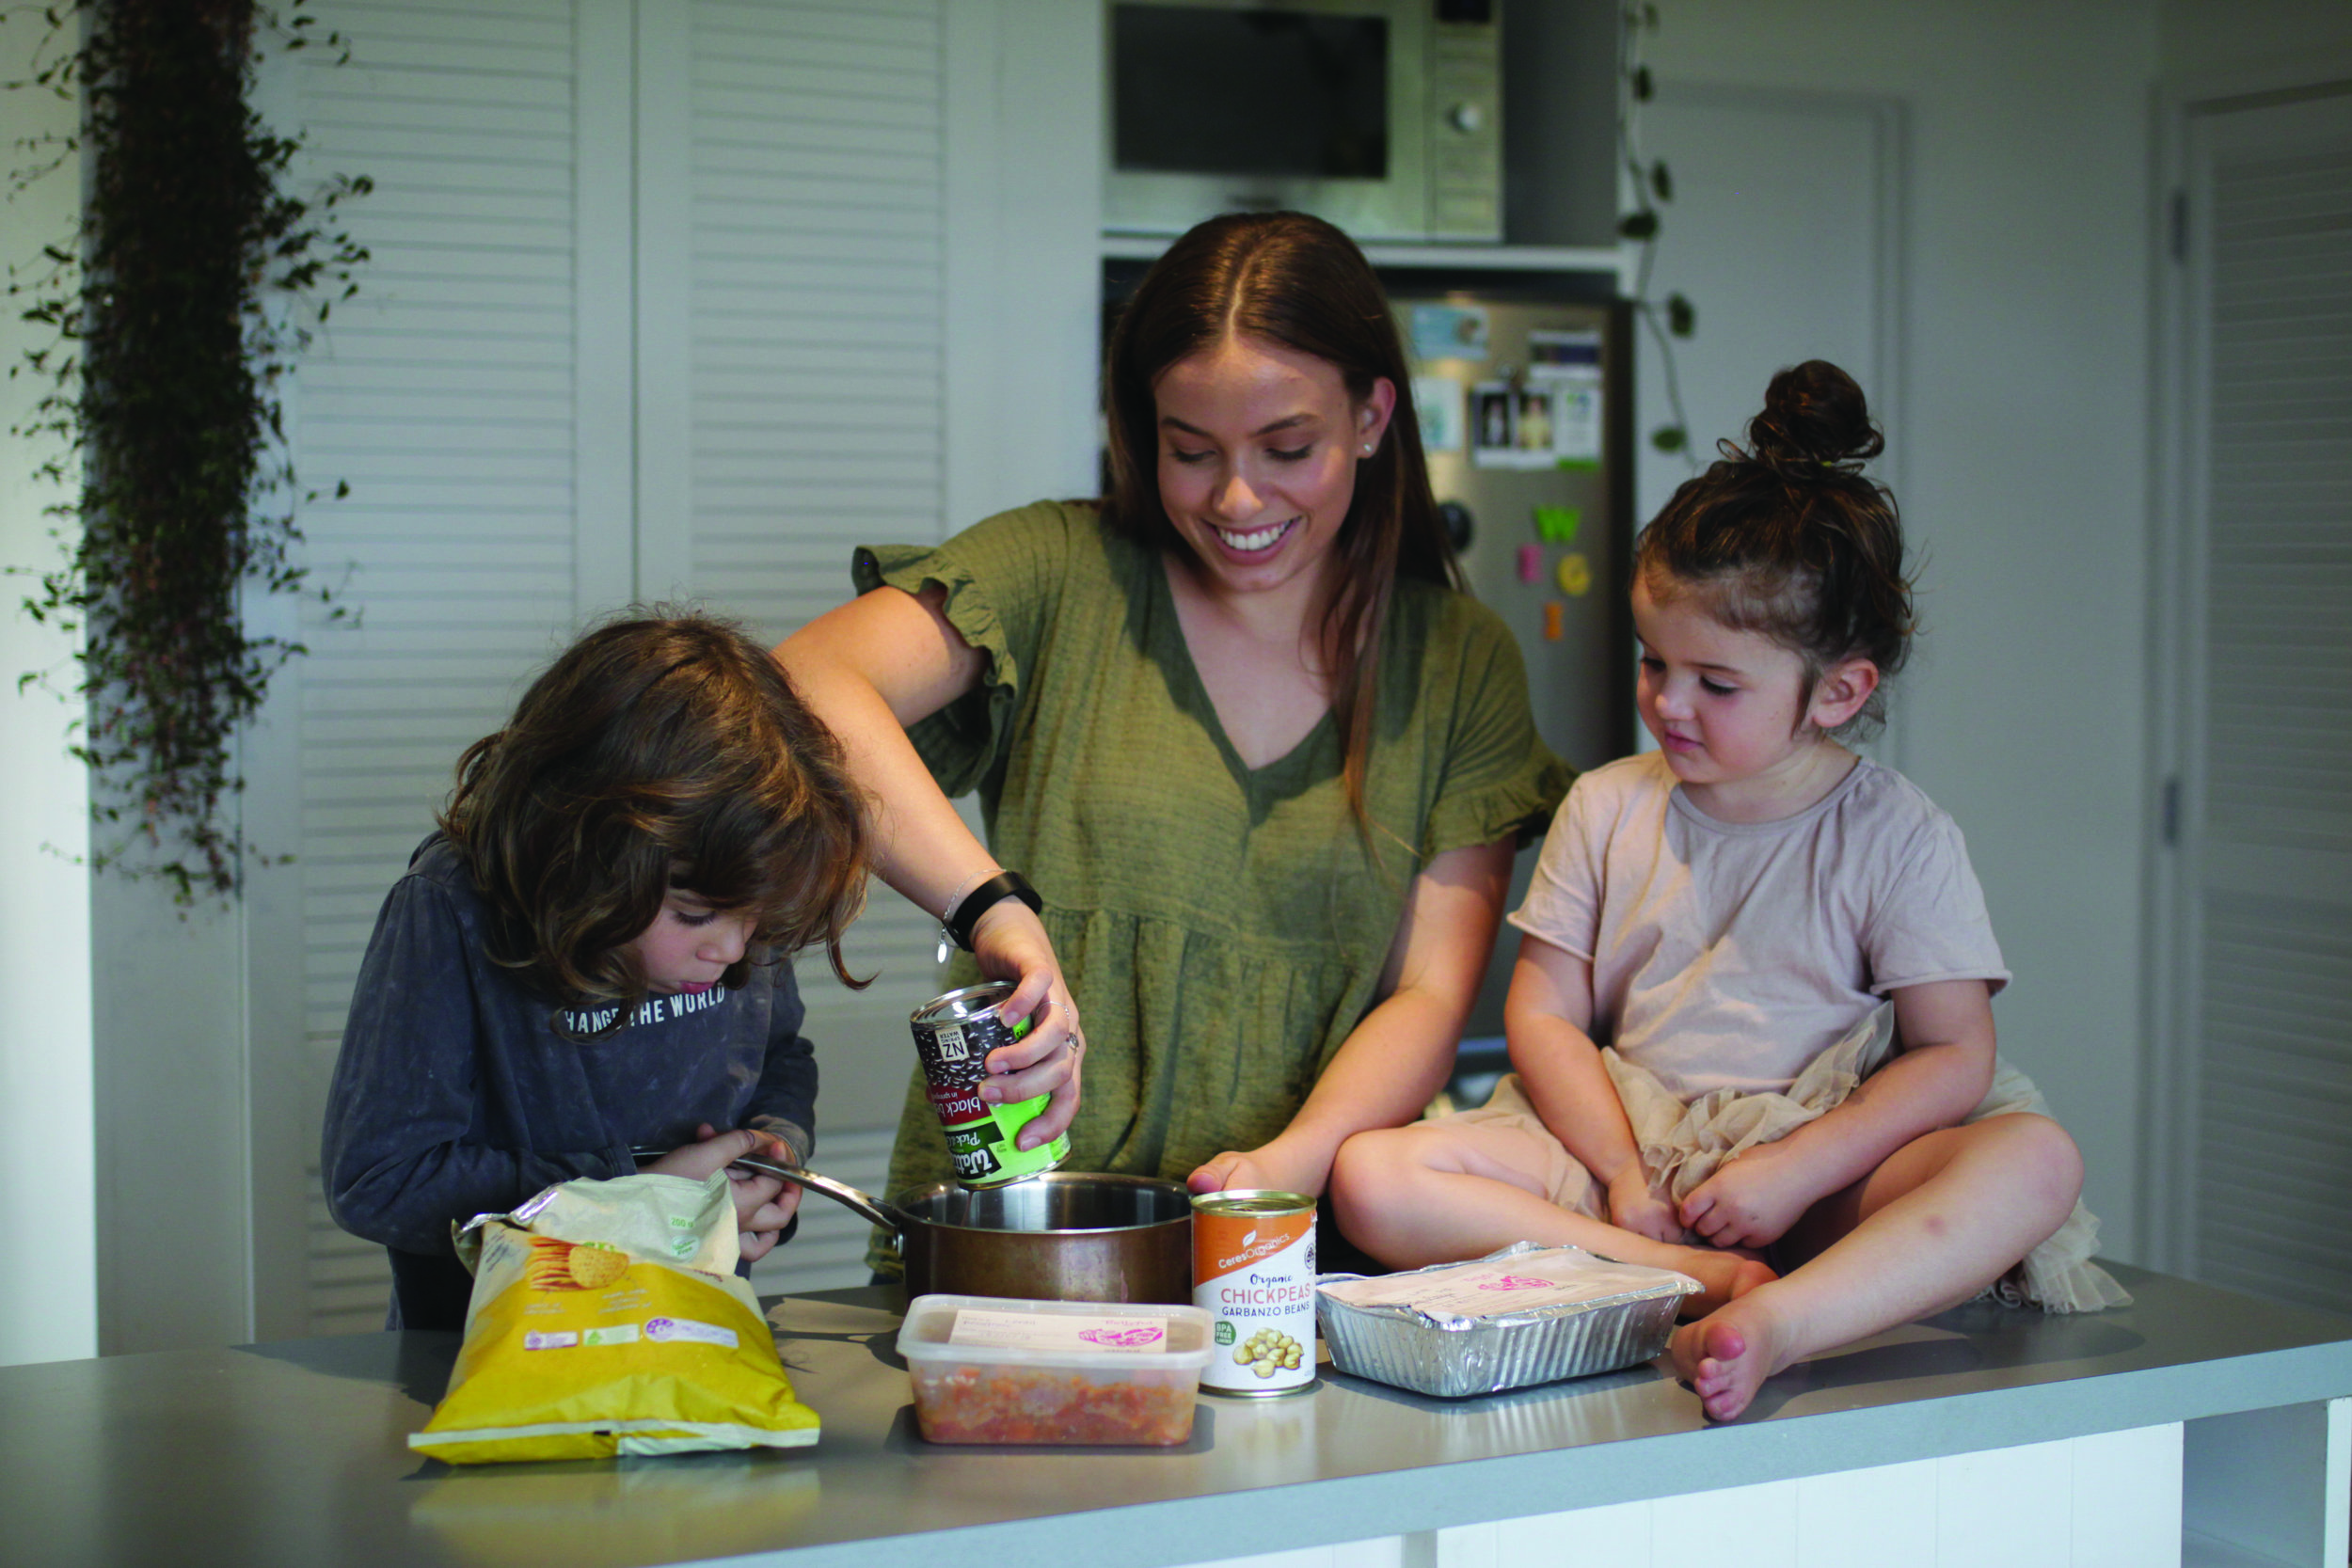 Courtney showing the kids next door just how easy it is to cook up the vege bolognese.